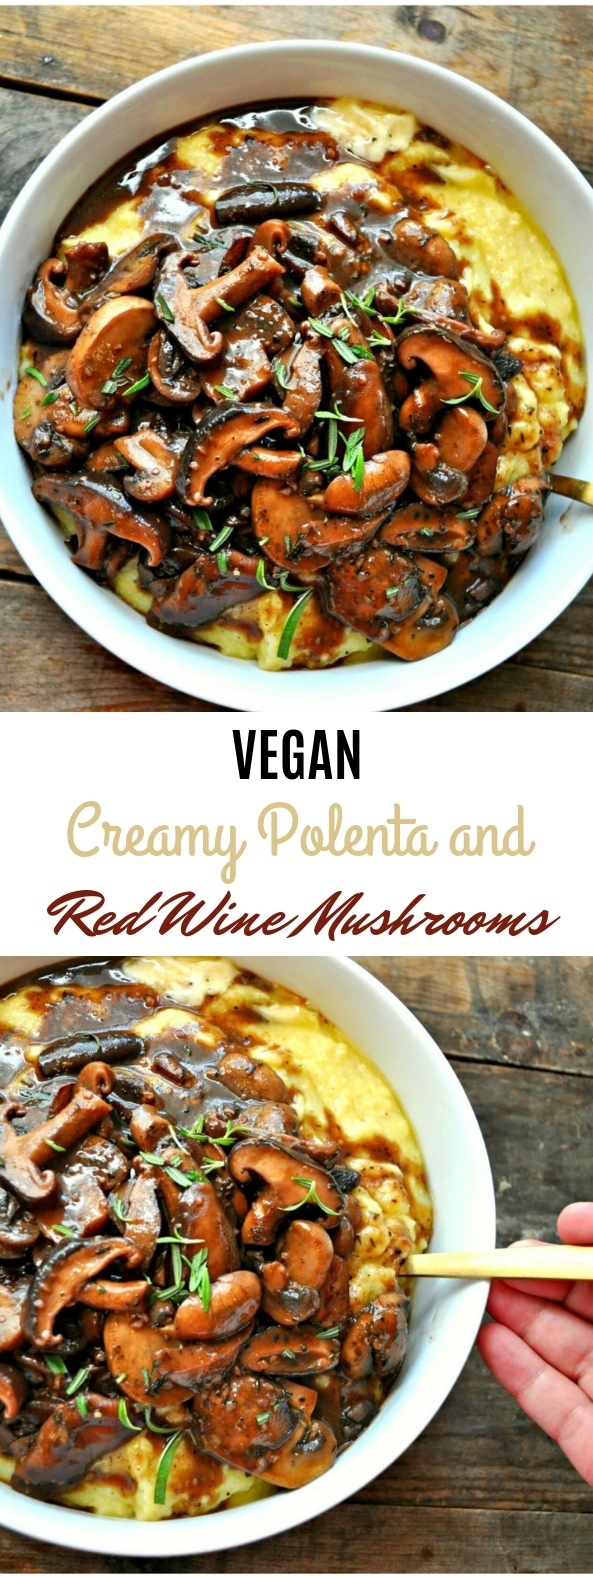 Vegan Creamy Polenta and Red Wine Mushrooms #creamy #vegan